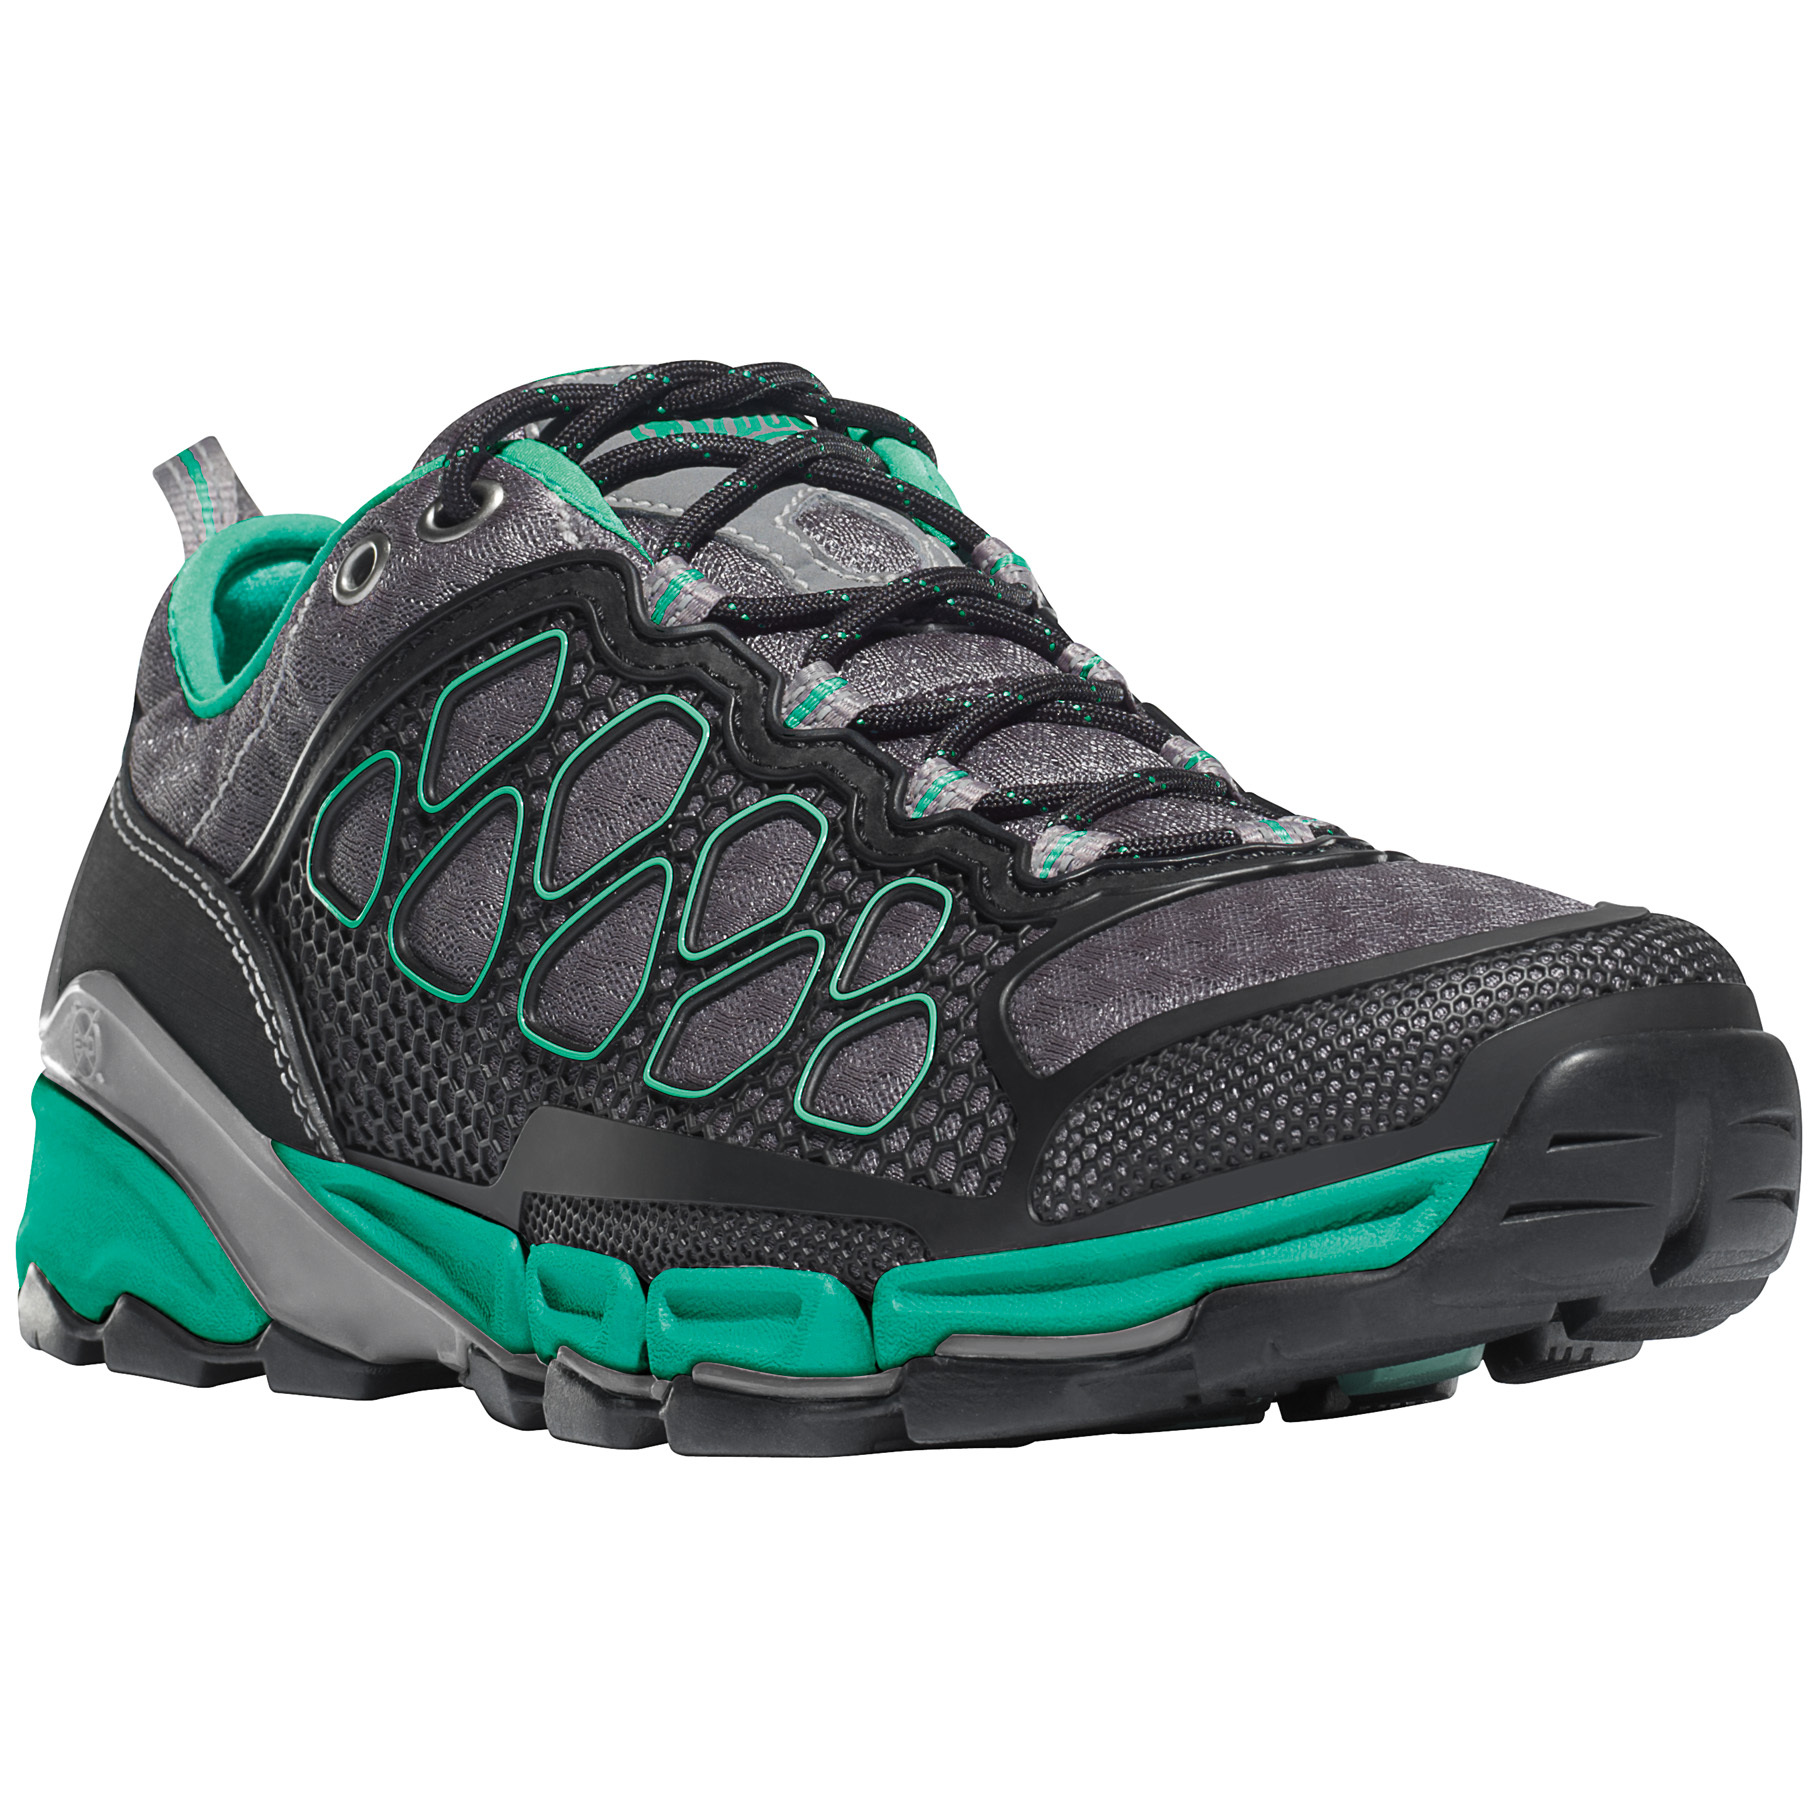 Women's Danner Extrovert Hiking Shoes. Ultra-light, quick-drying low hikers with plenty of zip! Ultra light and completely breathable, this unique Hiker goes from wet to dry in minutes. The minimal upper provides a light and comfortable fit, while Danner's patented EXO technology brings stability and protection. Drainage channels and flex points throughout the platform encourage maximum airflow.Get moving:The upper is made from protective polyurethane fused to light and breathable polyfiber Danner patented EXO Platform offers enhanced stability and support Cascade Range outsole is specially developed for traction on wet surfaces Perforated open cell polyurethane insole for breathability and cushioning DWR (Durable Water Repellent) treated upper material Nylon shank for lightweight underfoot support Midsole channels provide increased flexibility, underfoot breathability and drainable comfort Each approx. 13 ozs.State Size and Width, as available in the Shopping Cart. - $119.99